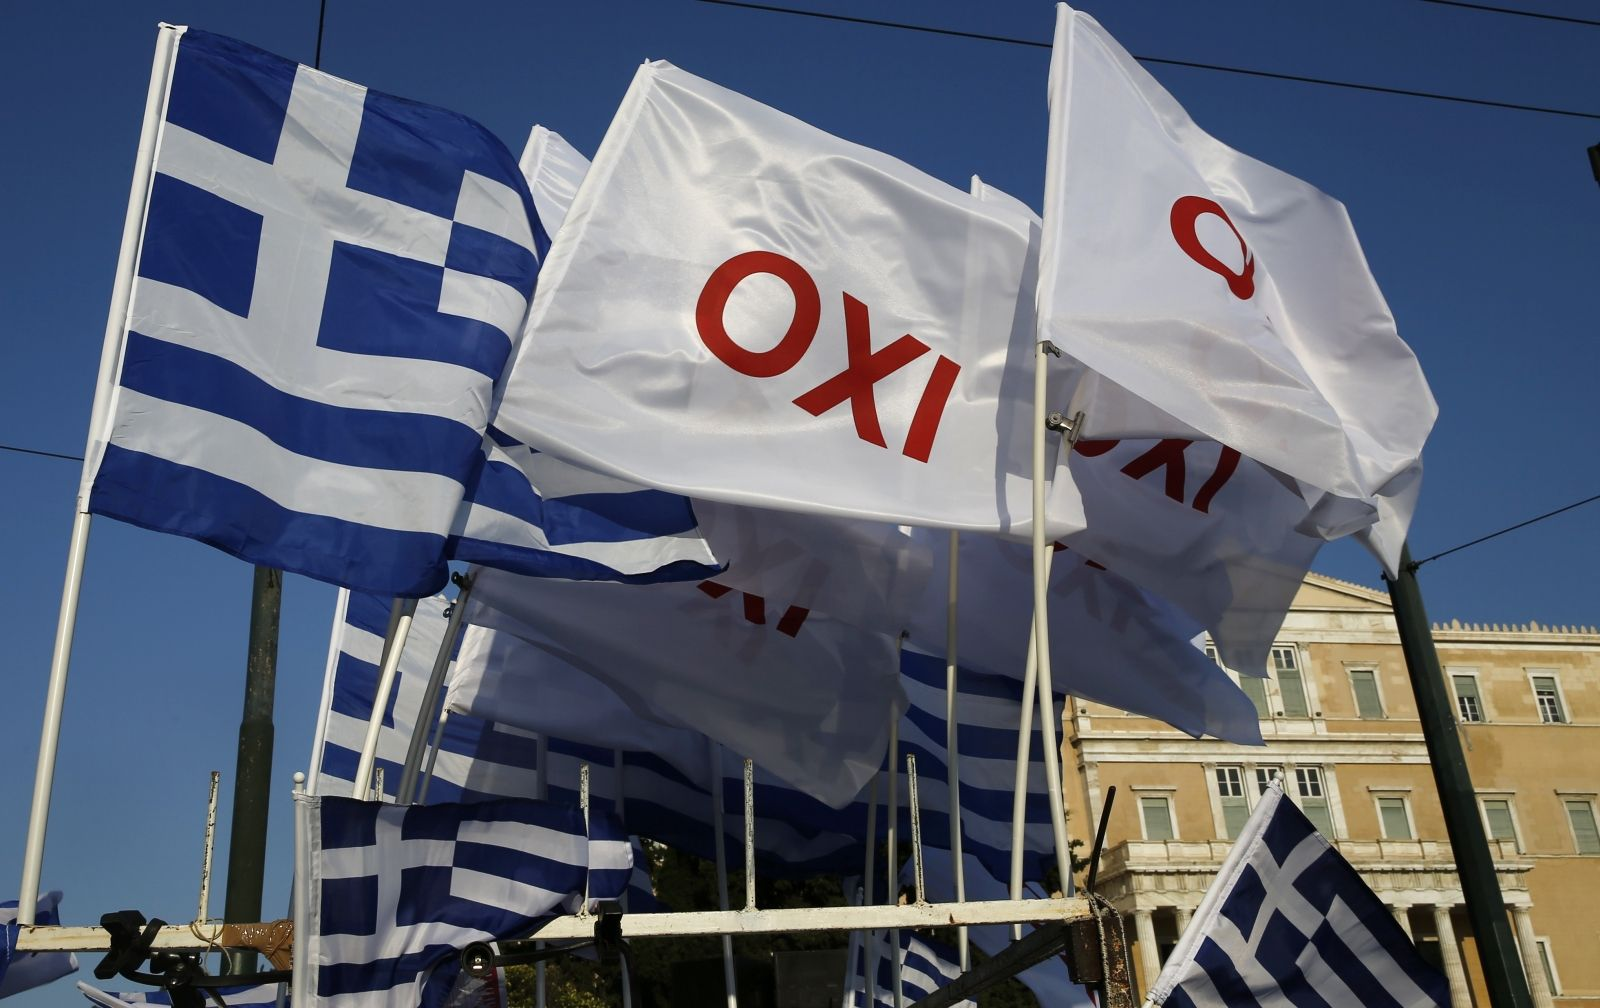 Greece OXI (NO) Flags